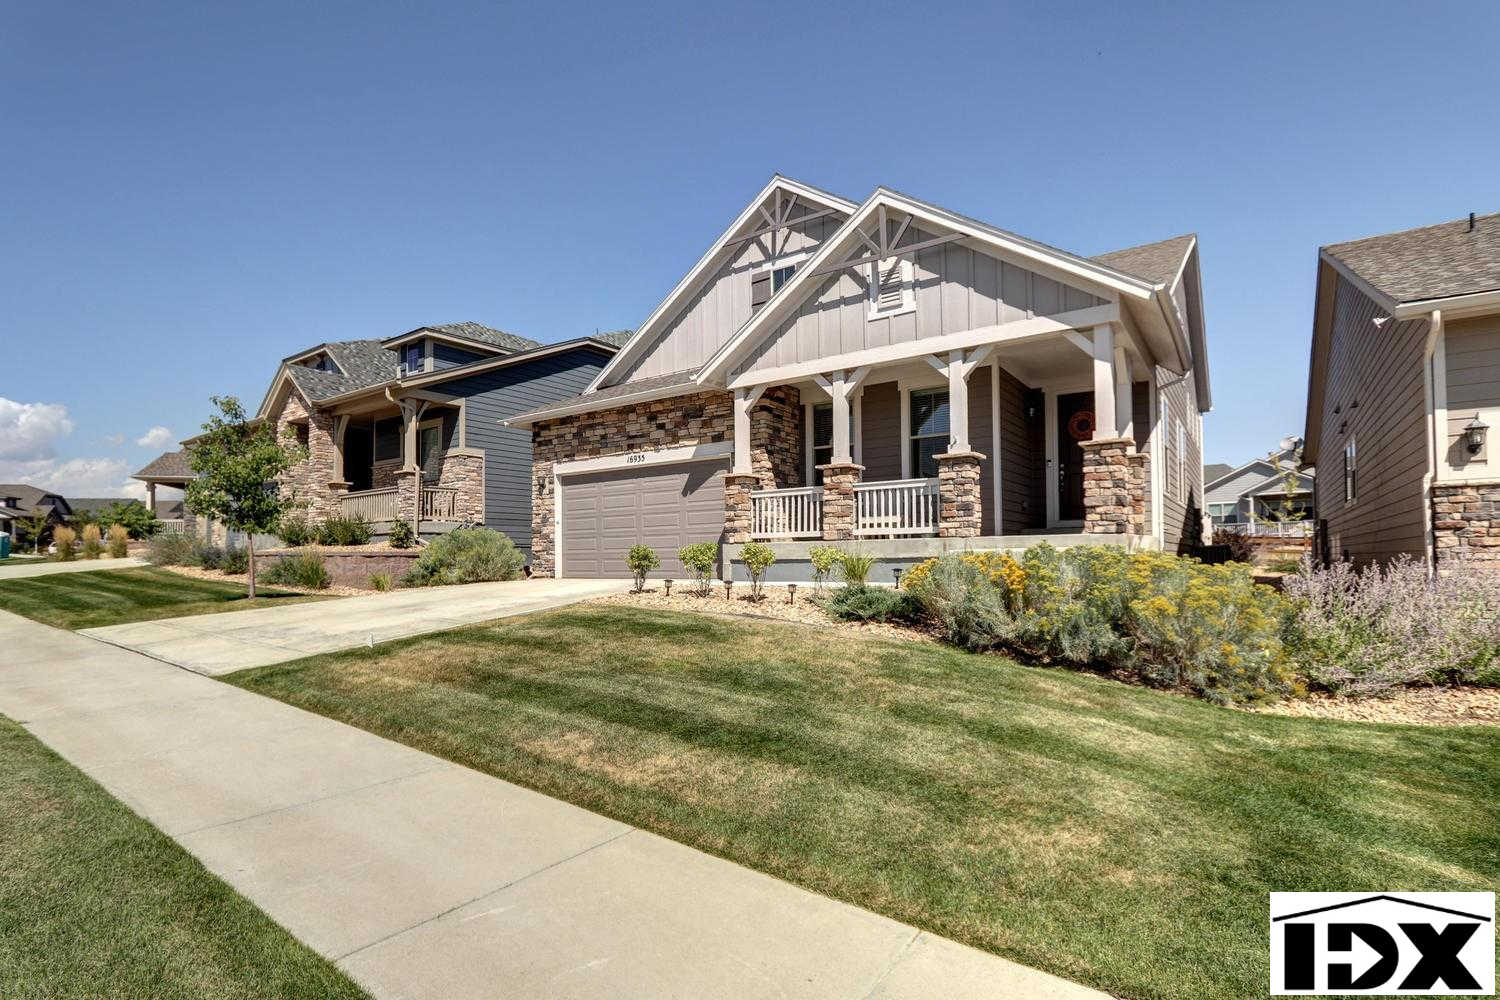 16935 West 85th Lane, Arvada, CO 80007 now has a new price of $575,900!